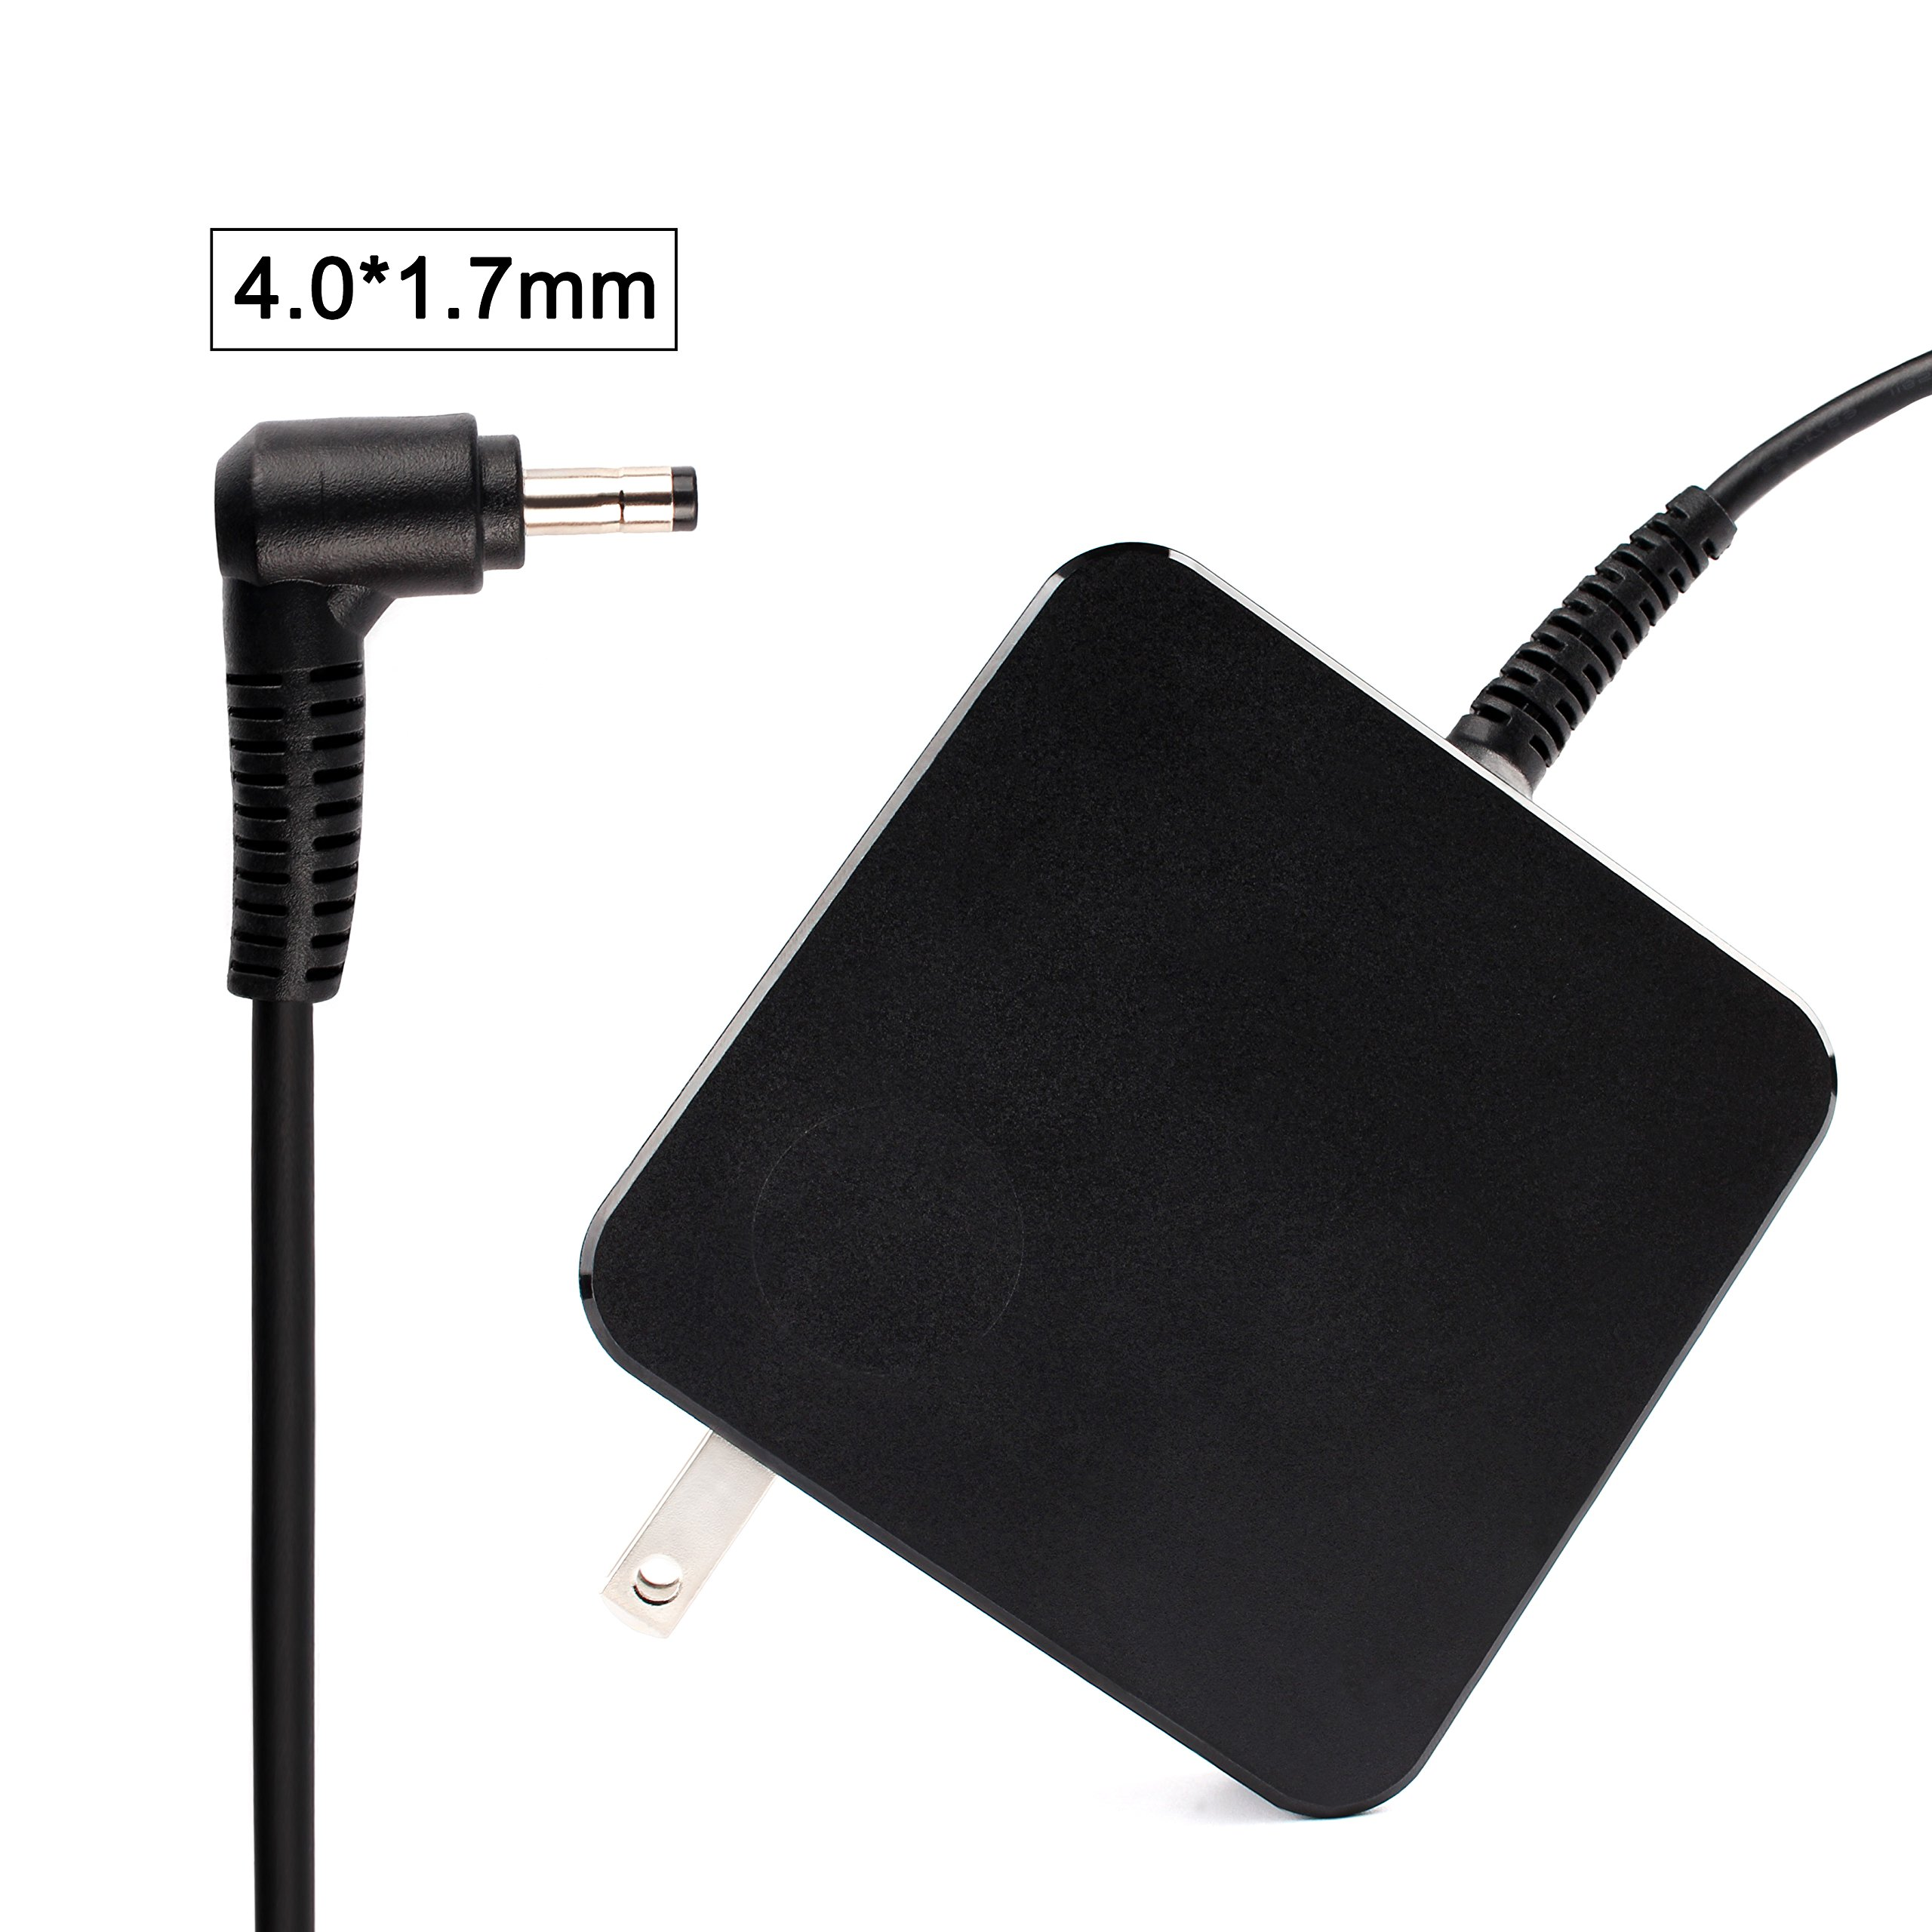 Juyoon 45W AC Adapter Power Charger for Lenovo Ideapad 100 110S 120S 310 310S 320 320S 710S 510 510S 520S 330 330s (GX20K11838 GX20L23044 ADP-45DW PA-1450-55ll)